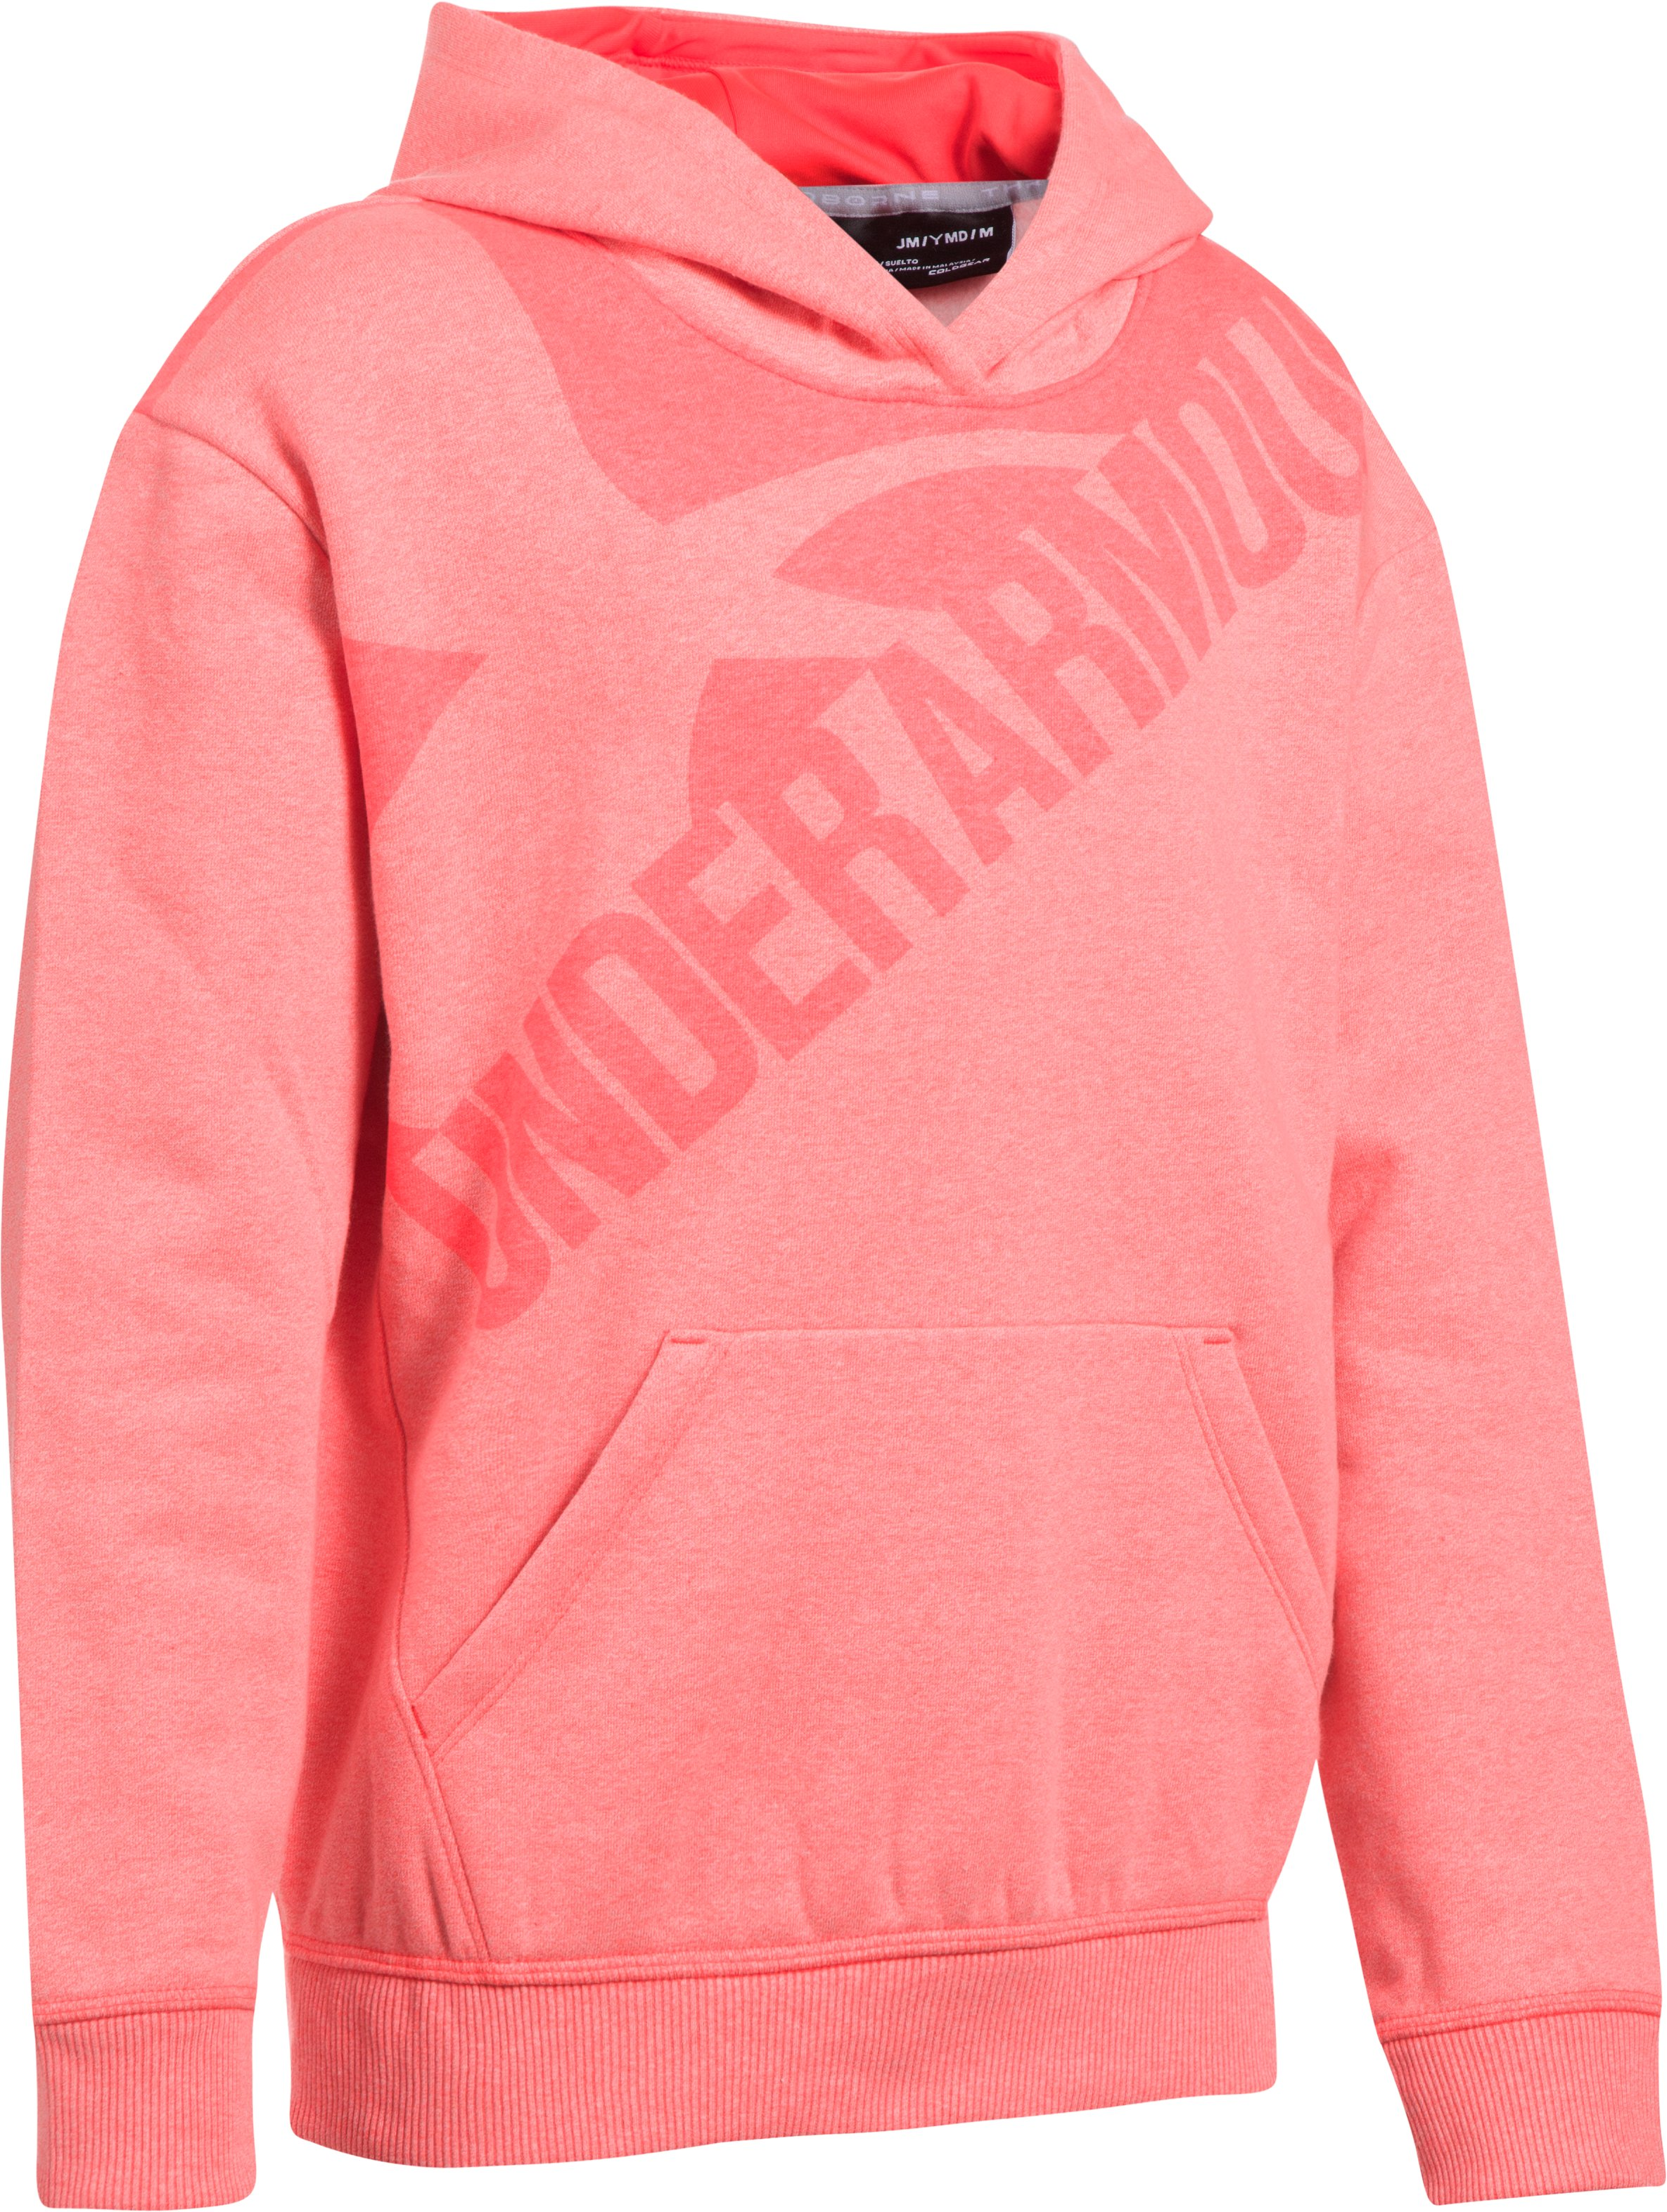 Girls' UA Threadborne™ Printed Fleece Hoodie, MARATHON RED